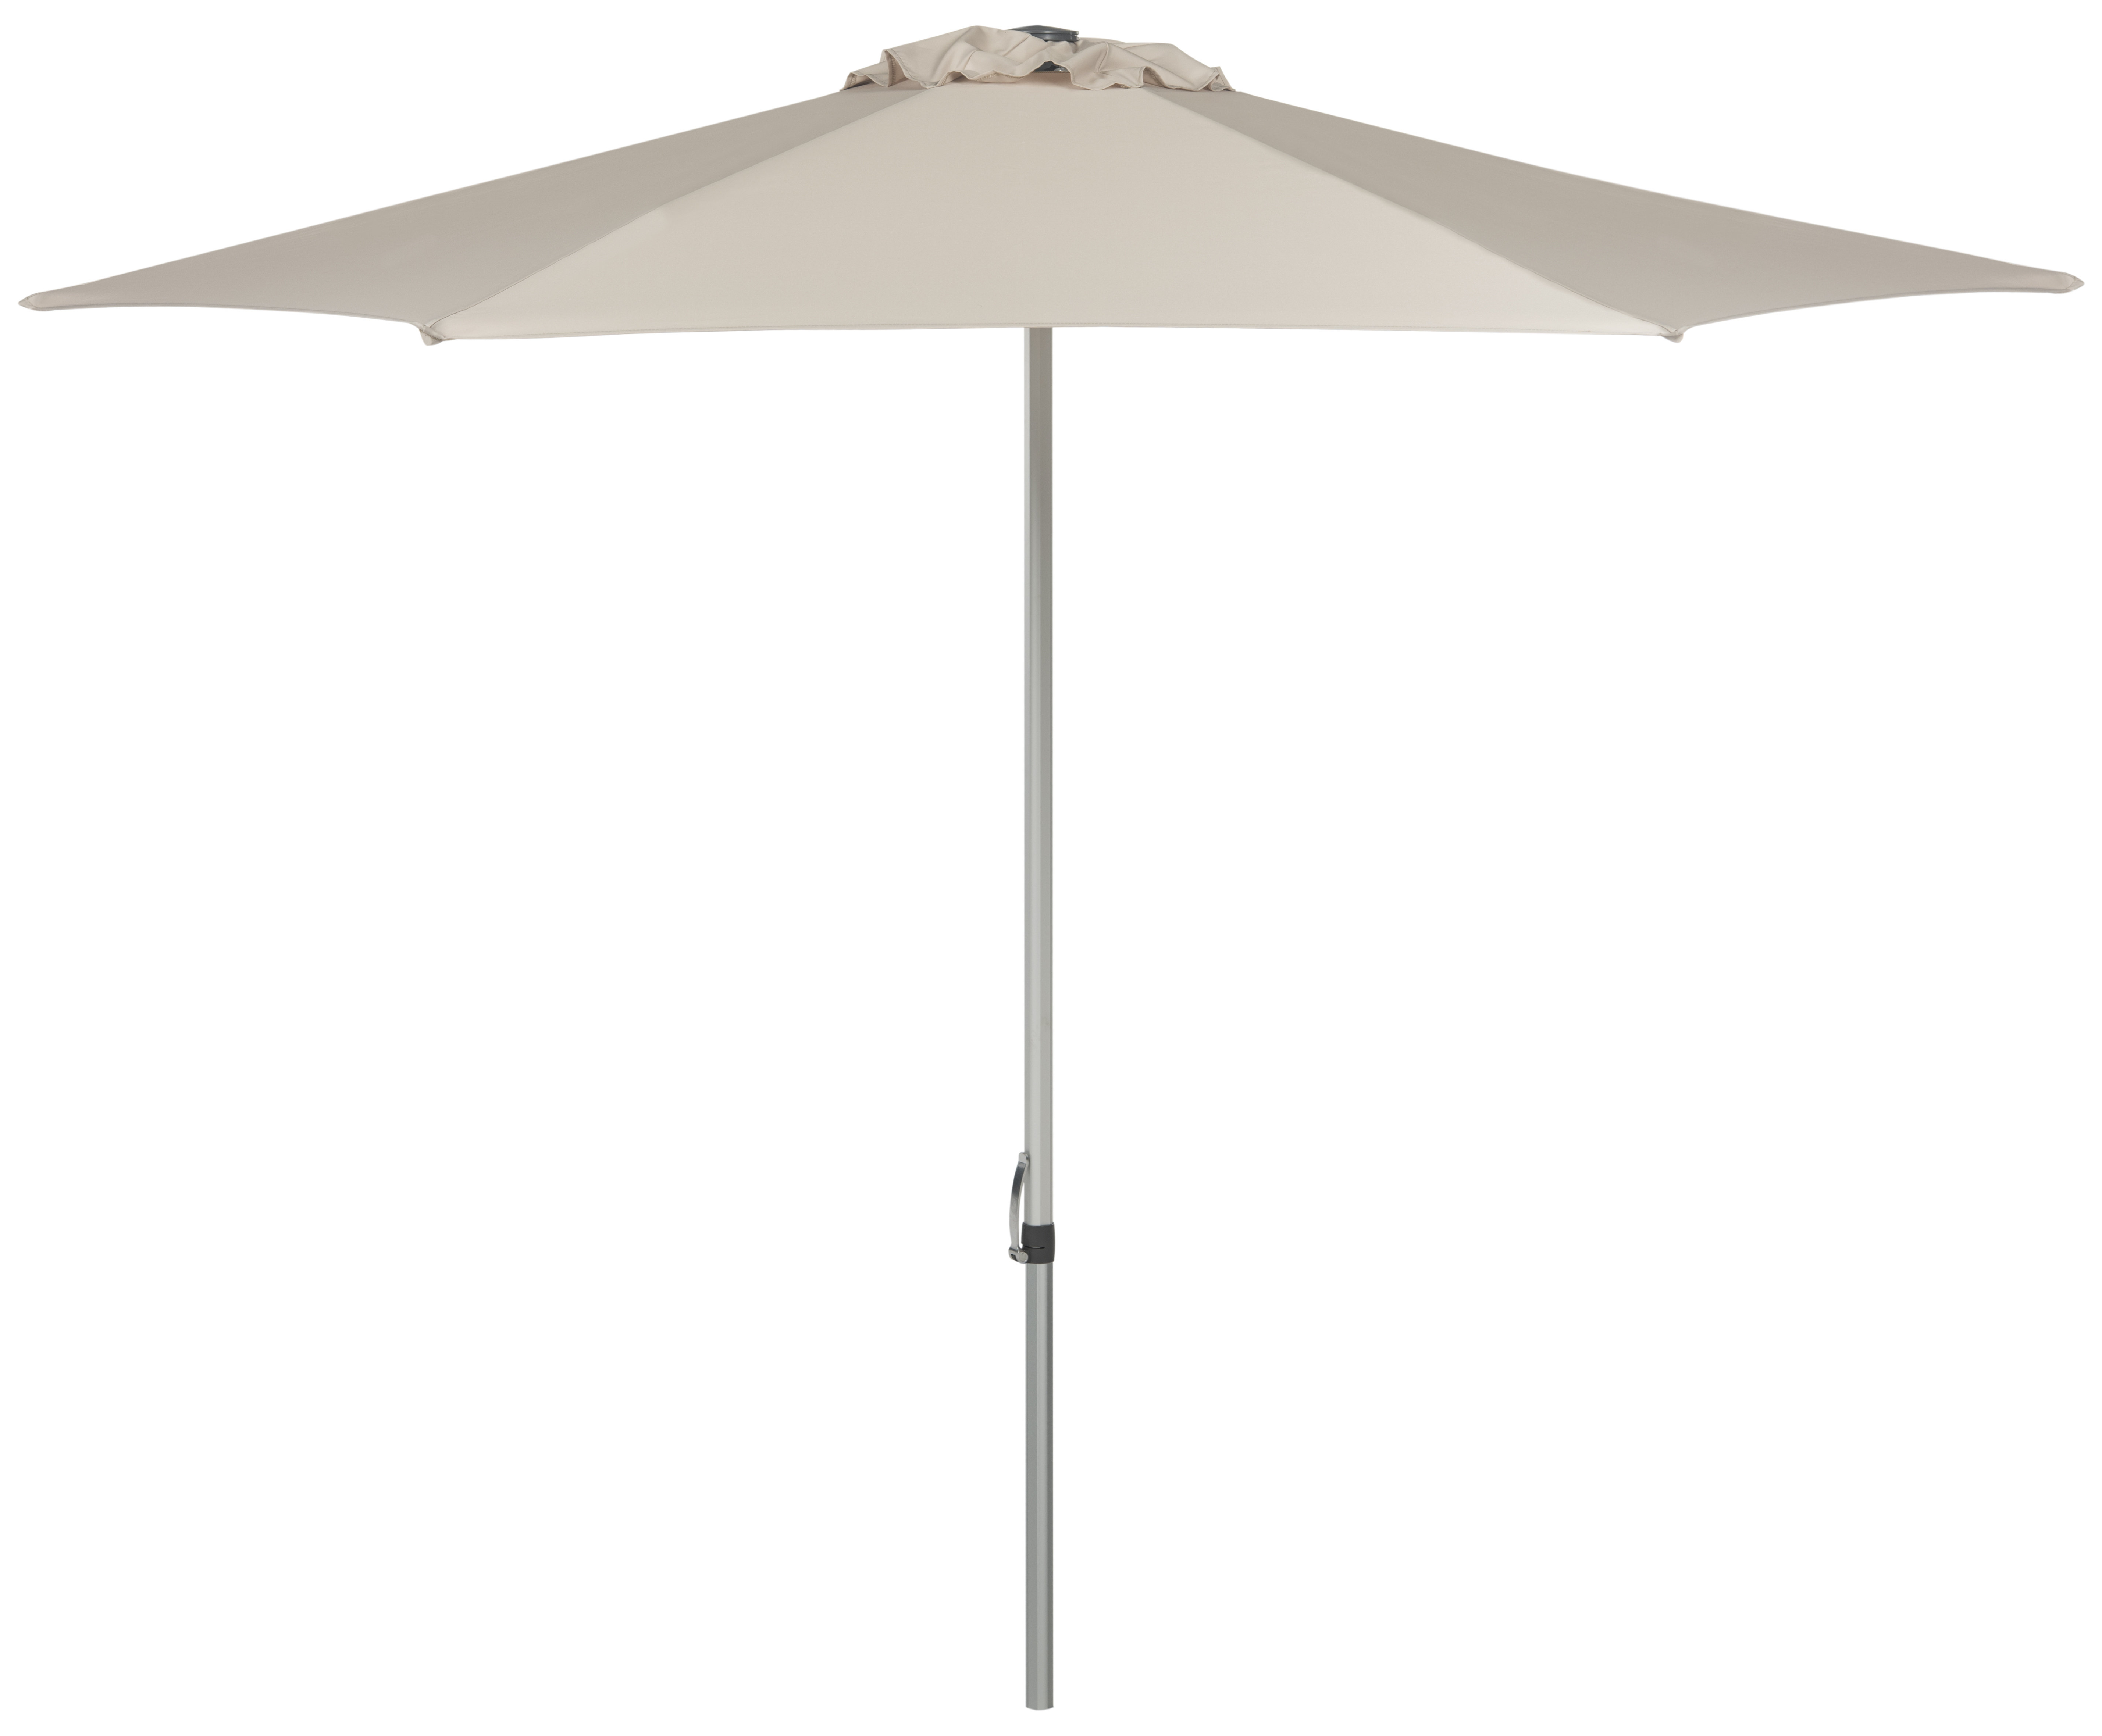 Widely Used Belles Market Umbrellas Within Armino 9' Market Umbrella (View 3 of 20)